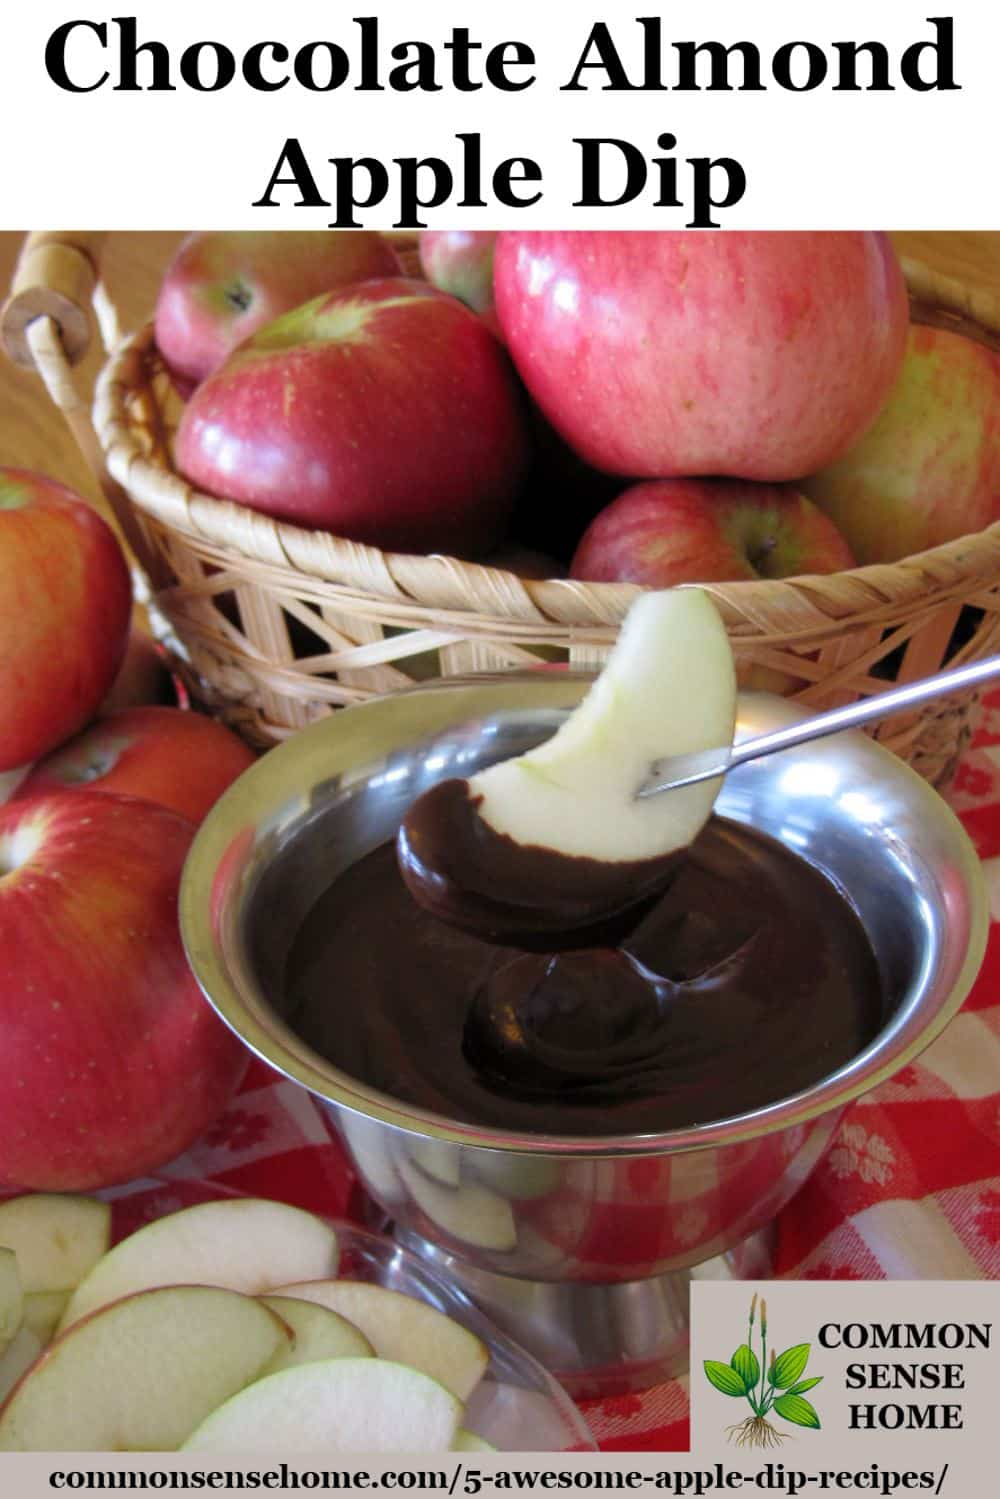 Chocolate almond apple dip